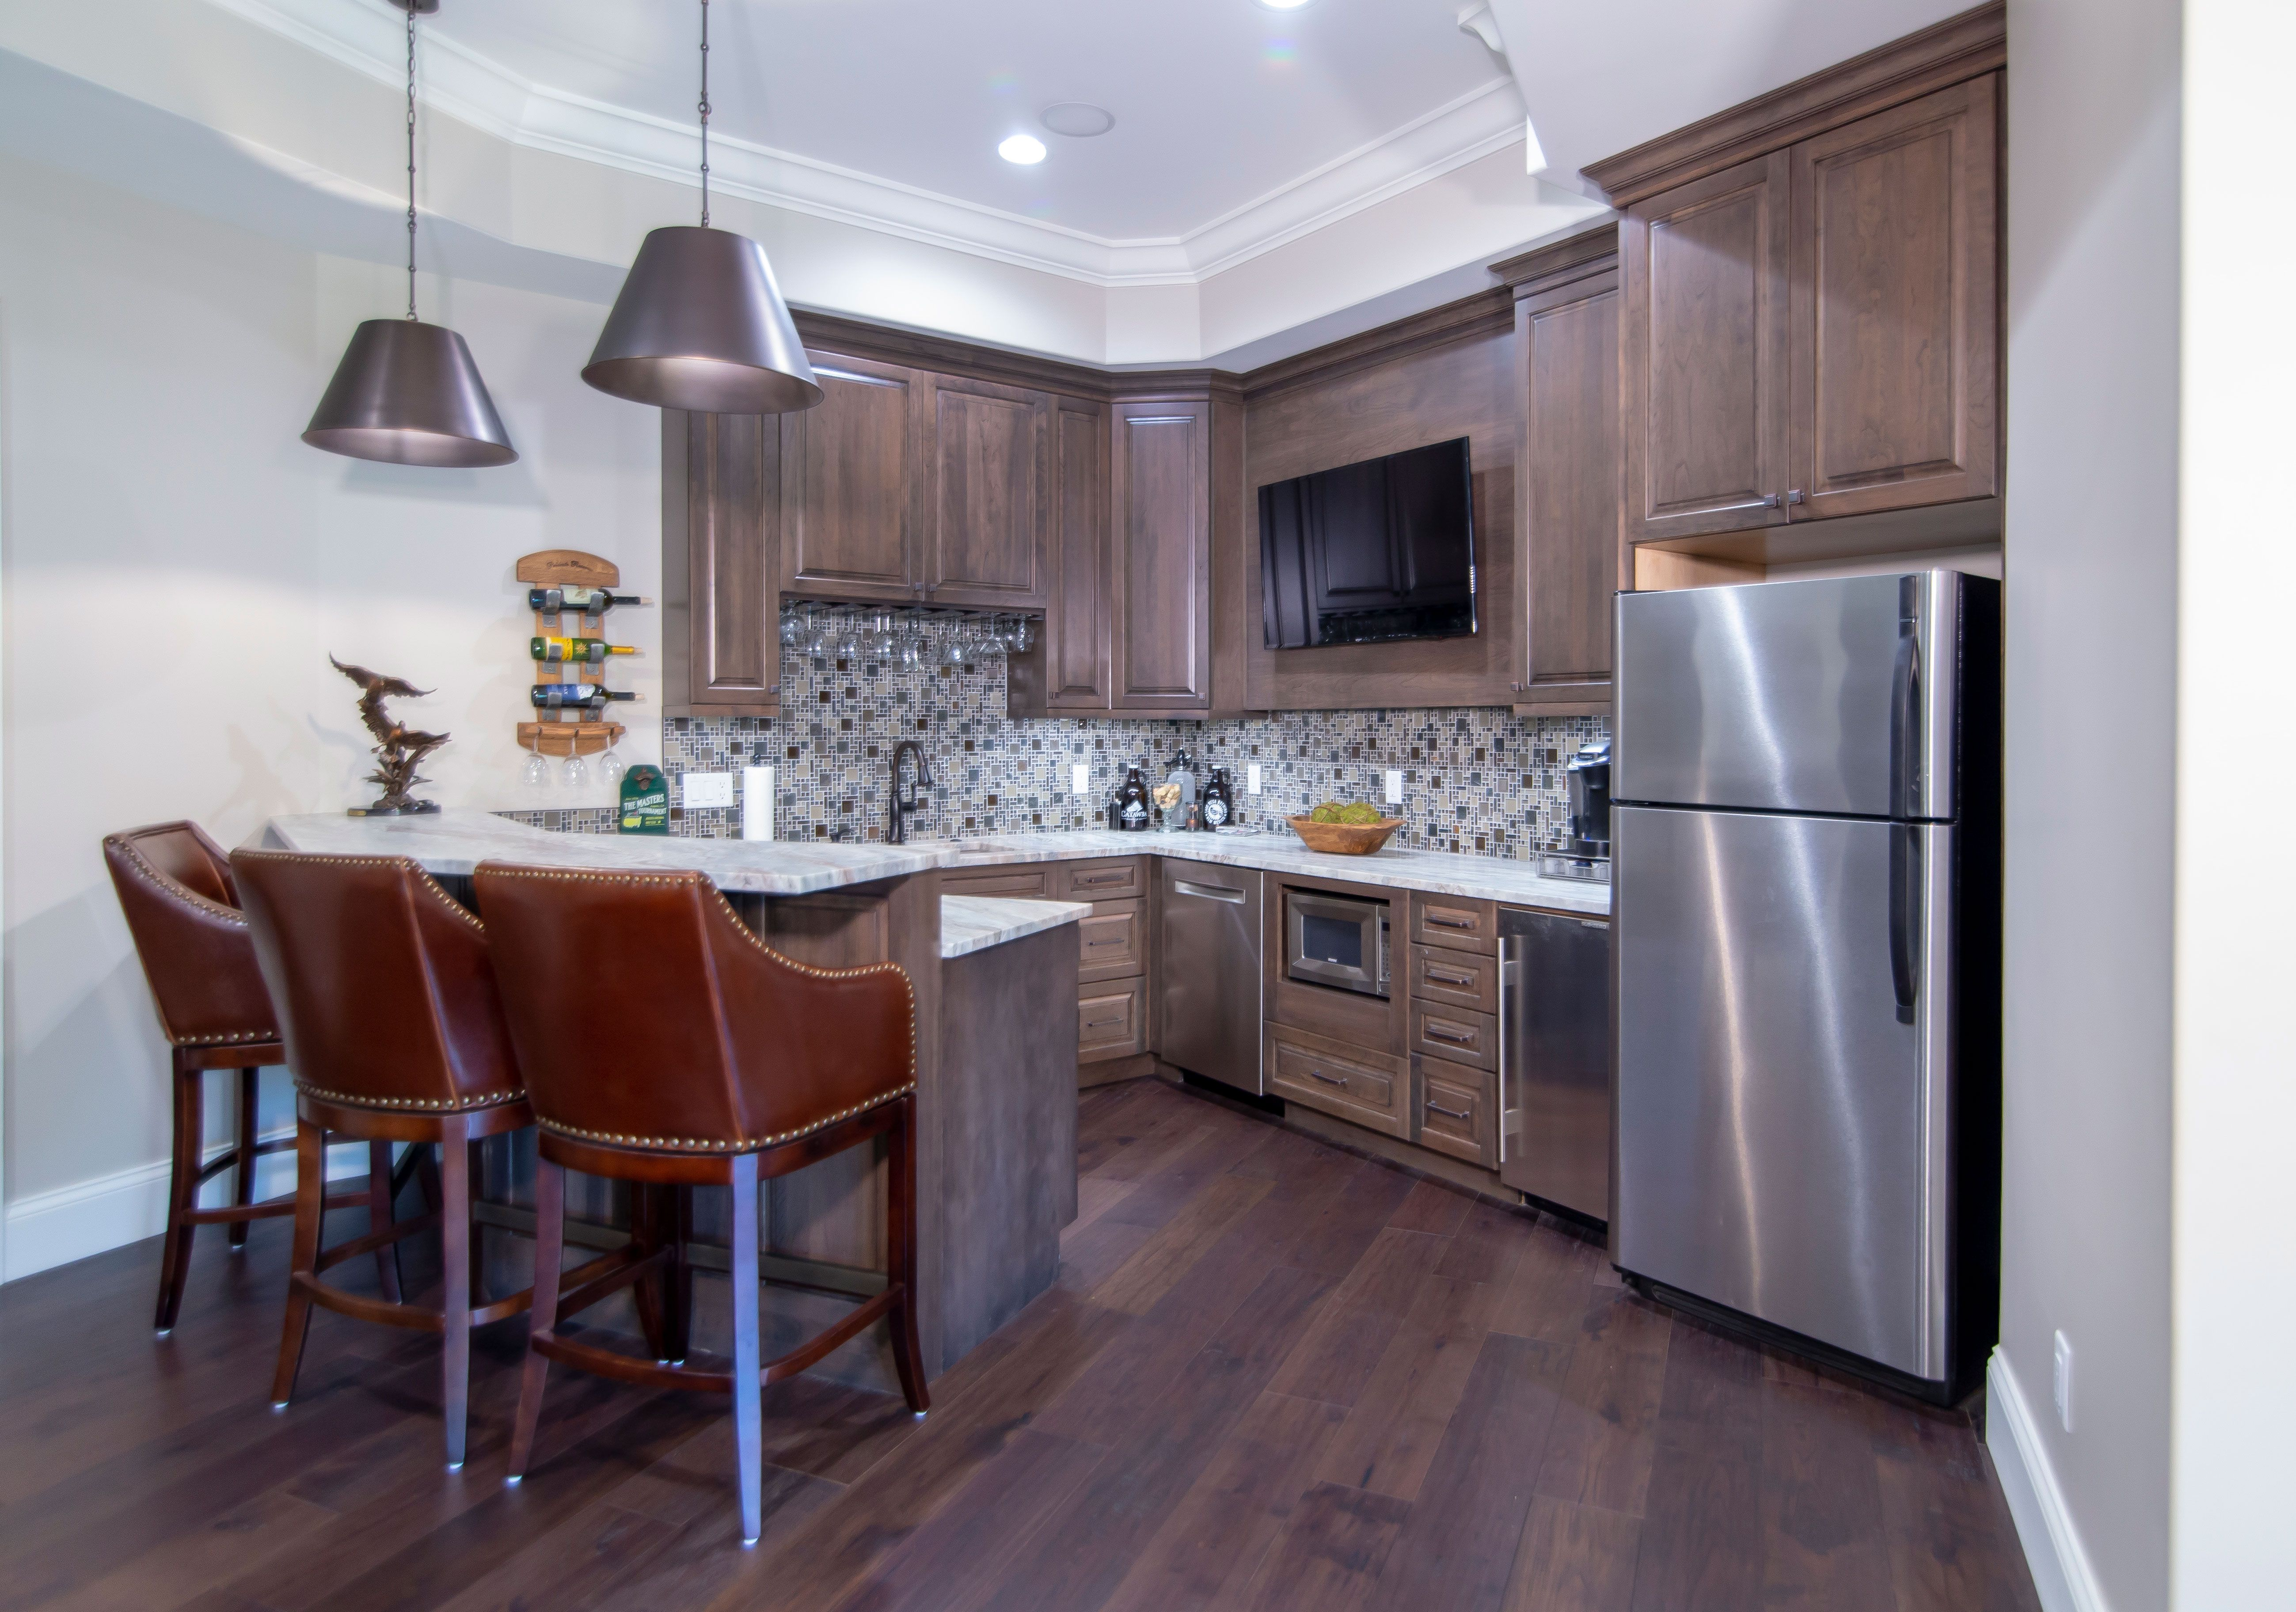 The Most Appealing Kitchen Cabinetry Designs Are Those That Reflect The Personal Pursuits And Kitchen Cabinetry Design Kitchen Cabinetry Small Basement Remodel